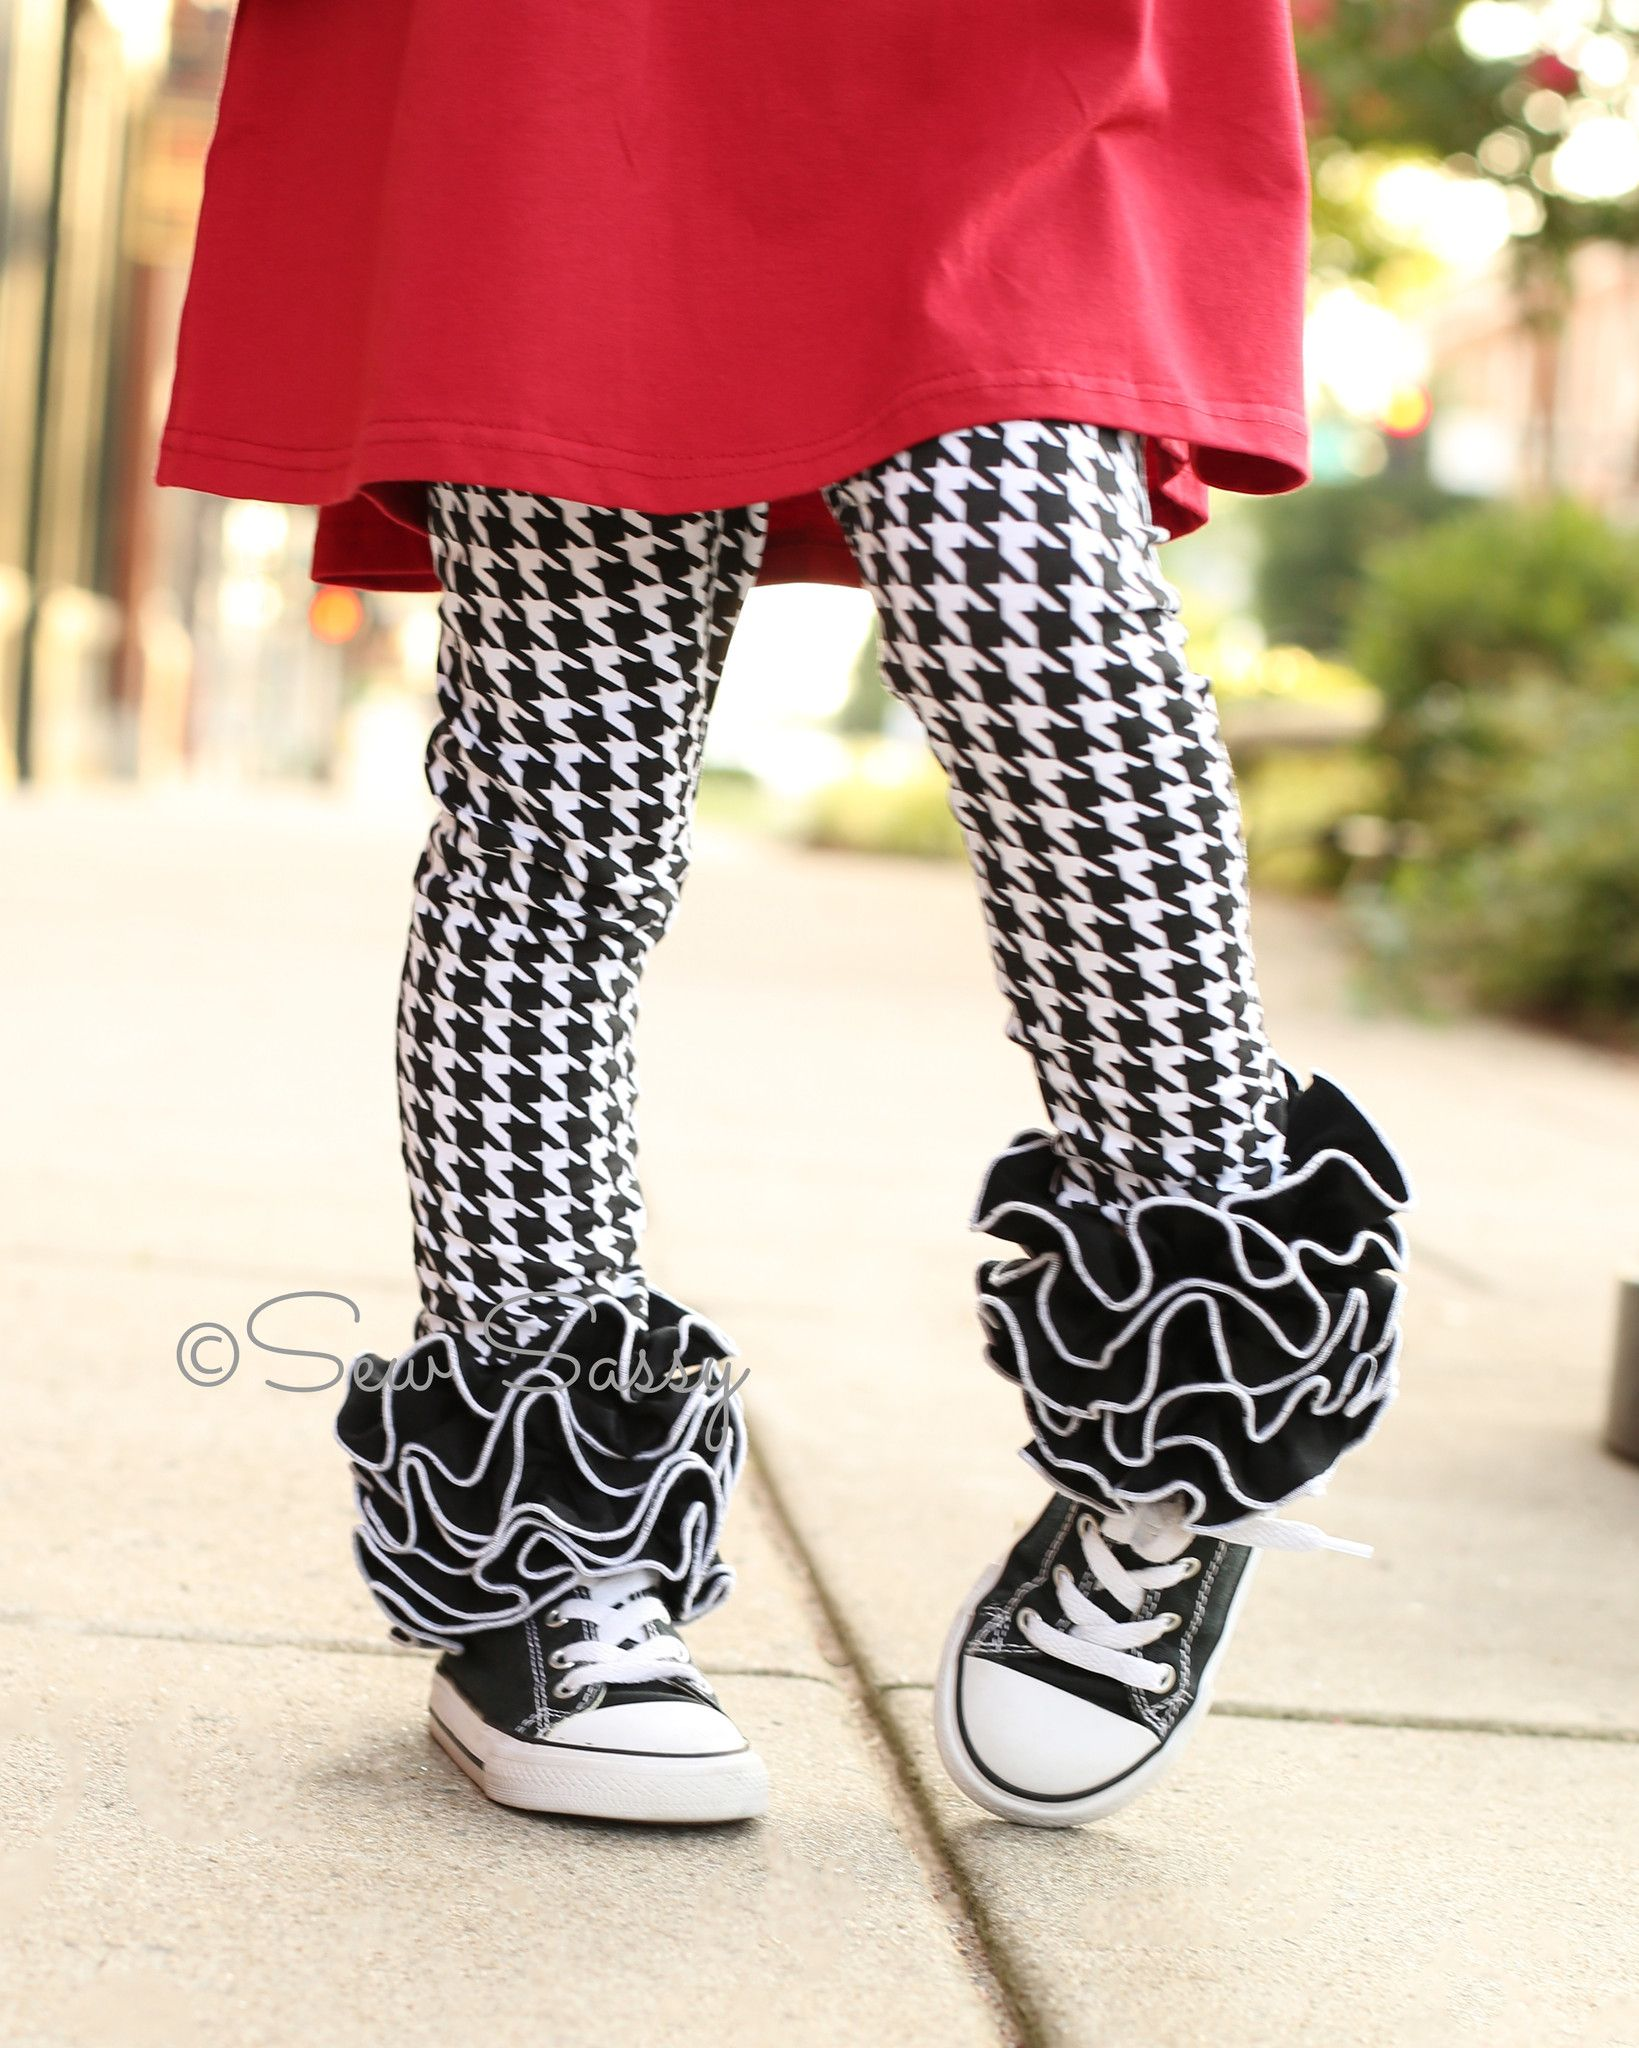 949213cdb87f9a Homecoming Houndstooth Icings – Sew Sassy Boutique, LLC Ruffle leggings